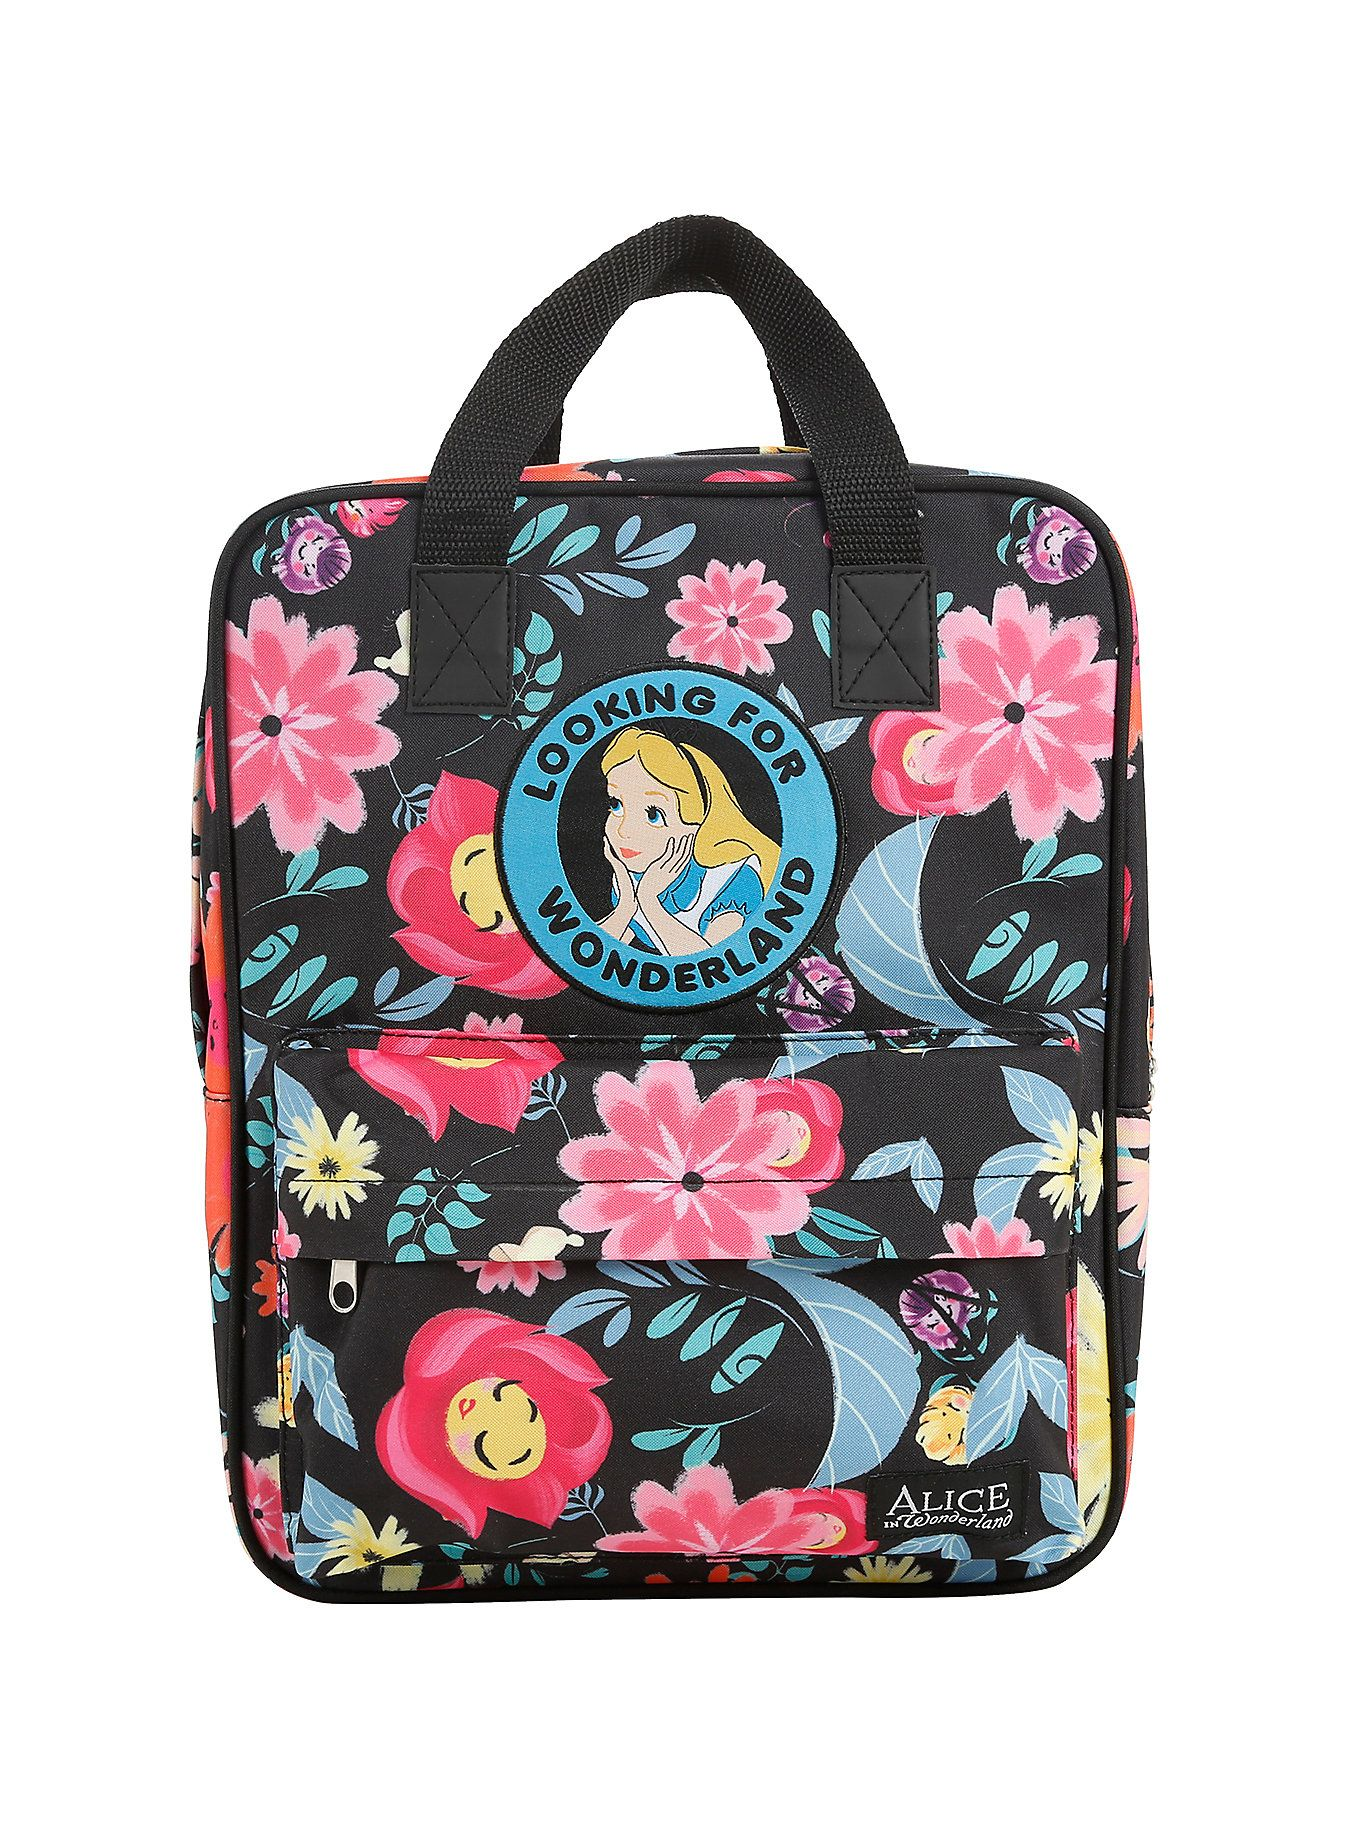 New Disney backpacks from Hot Topic in 2019